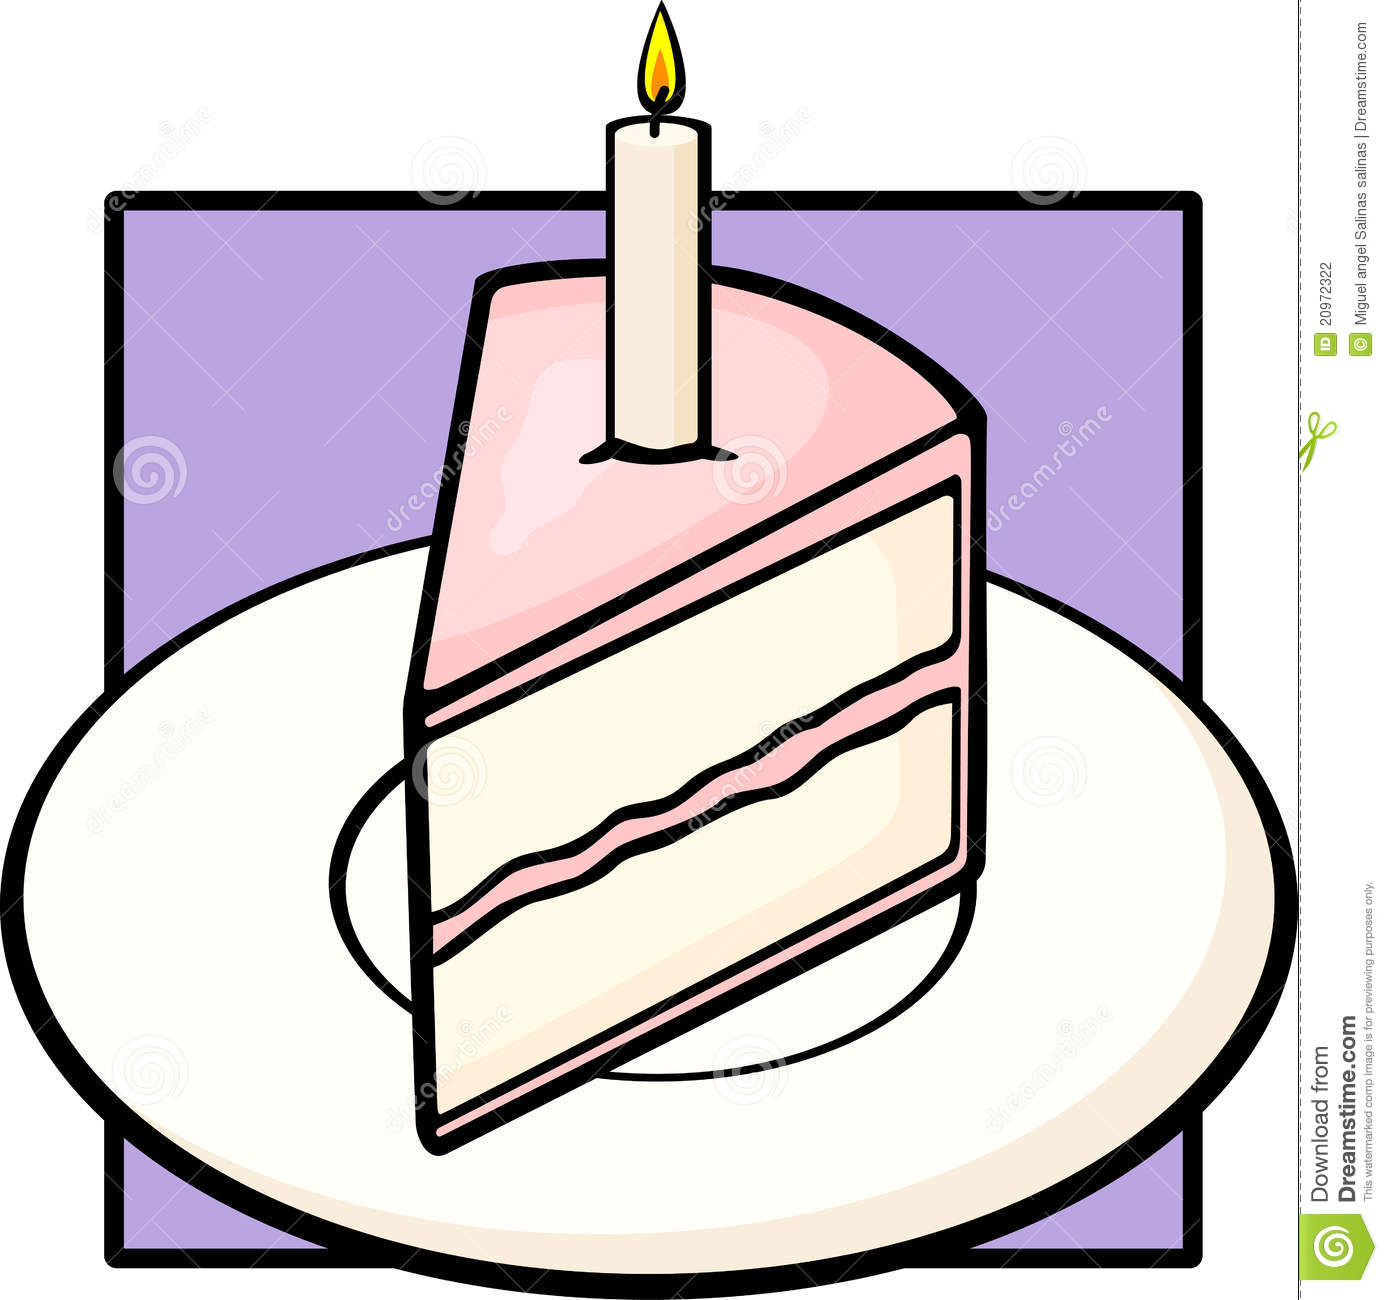 Cake Slice Png - Cake Slice Vector Png, Cliparts ...  |Cake Slice Clipart Black And White